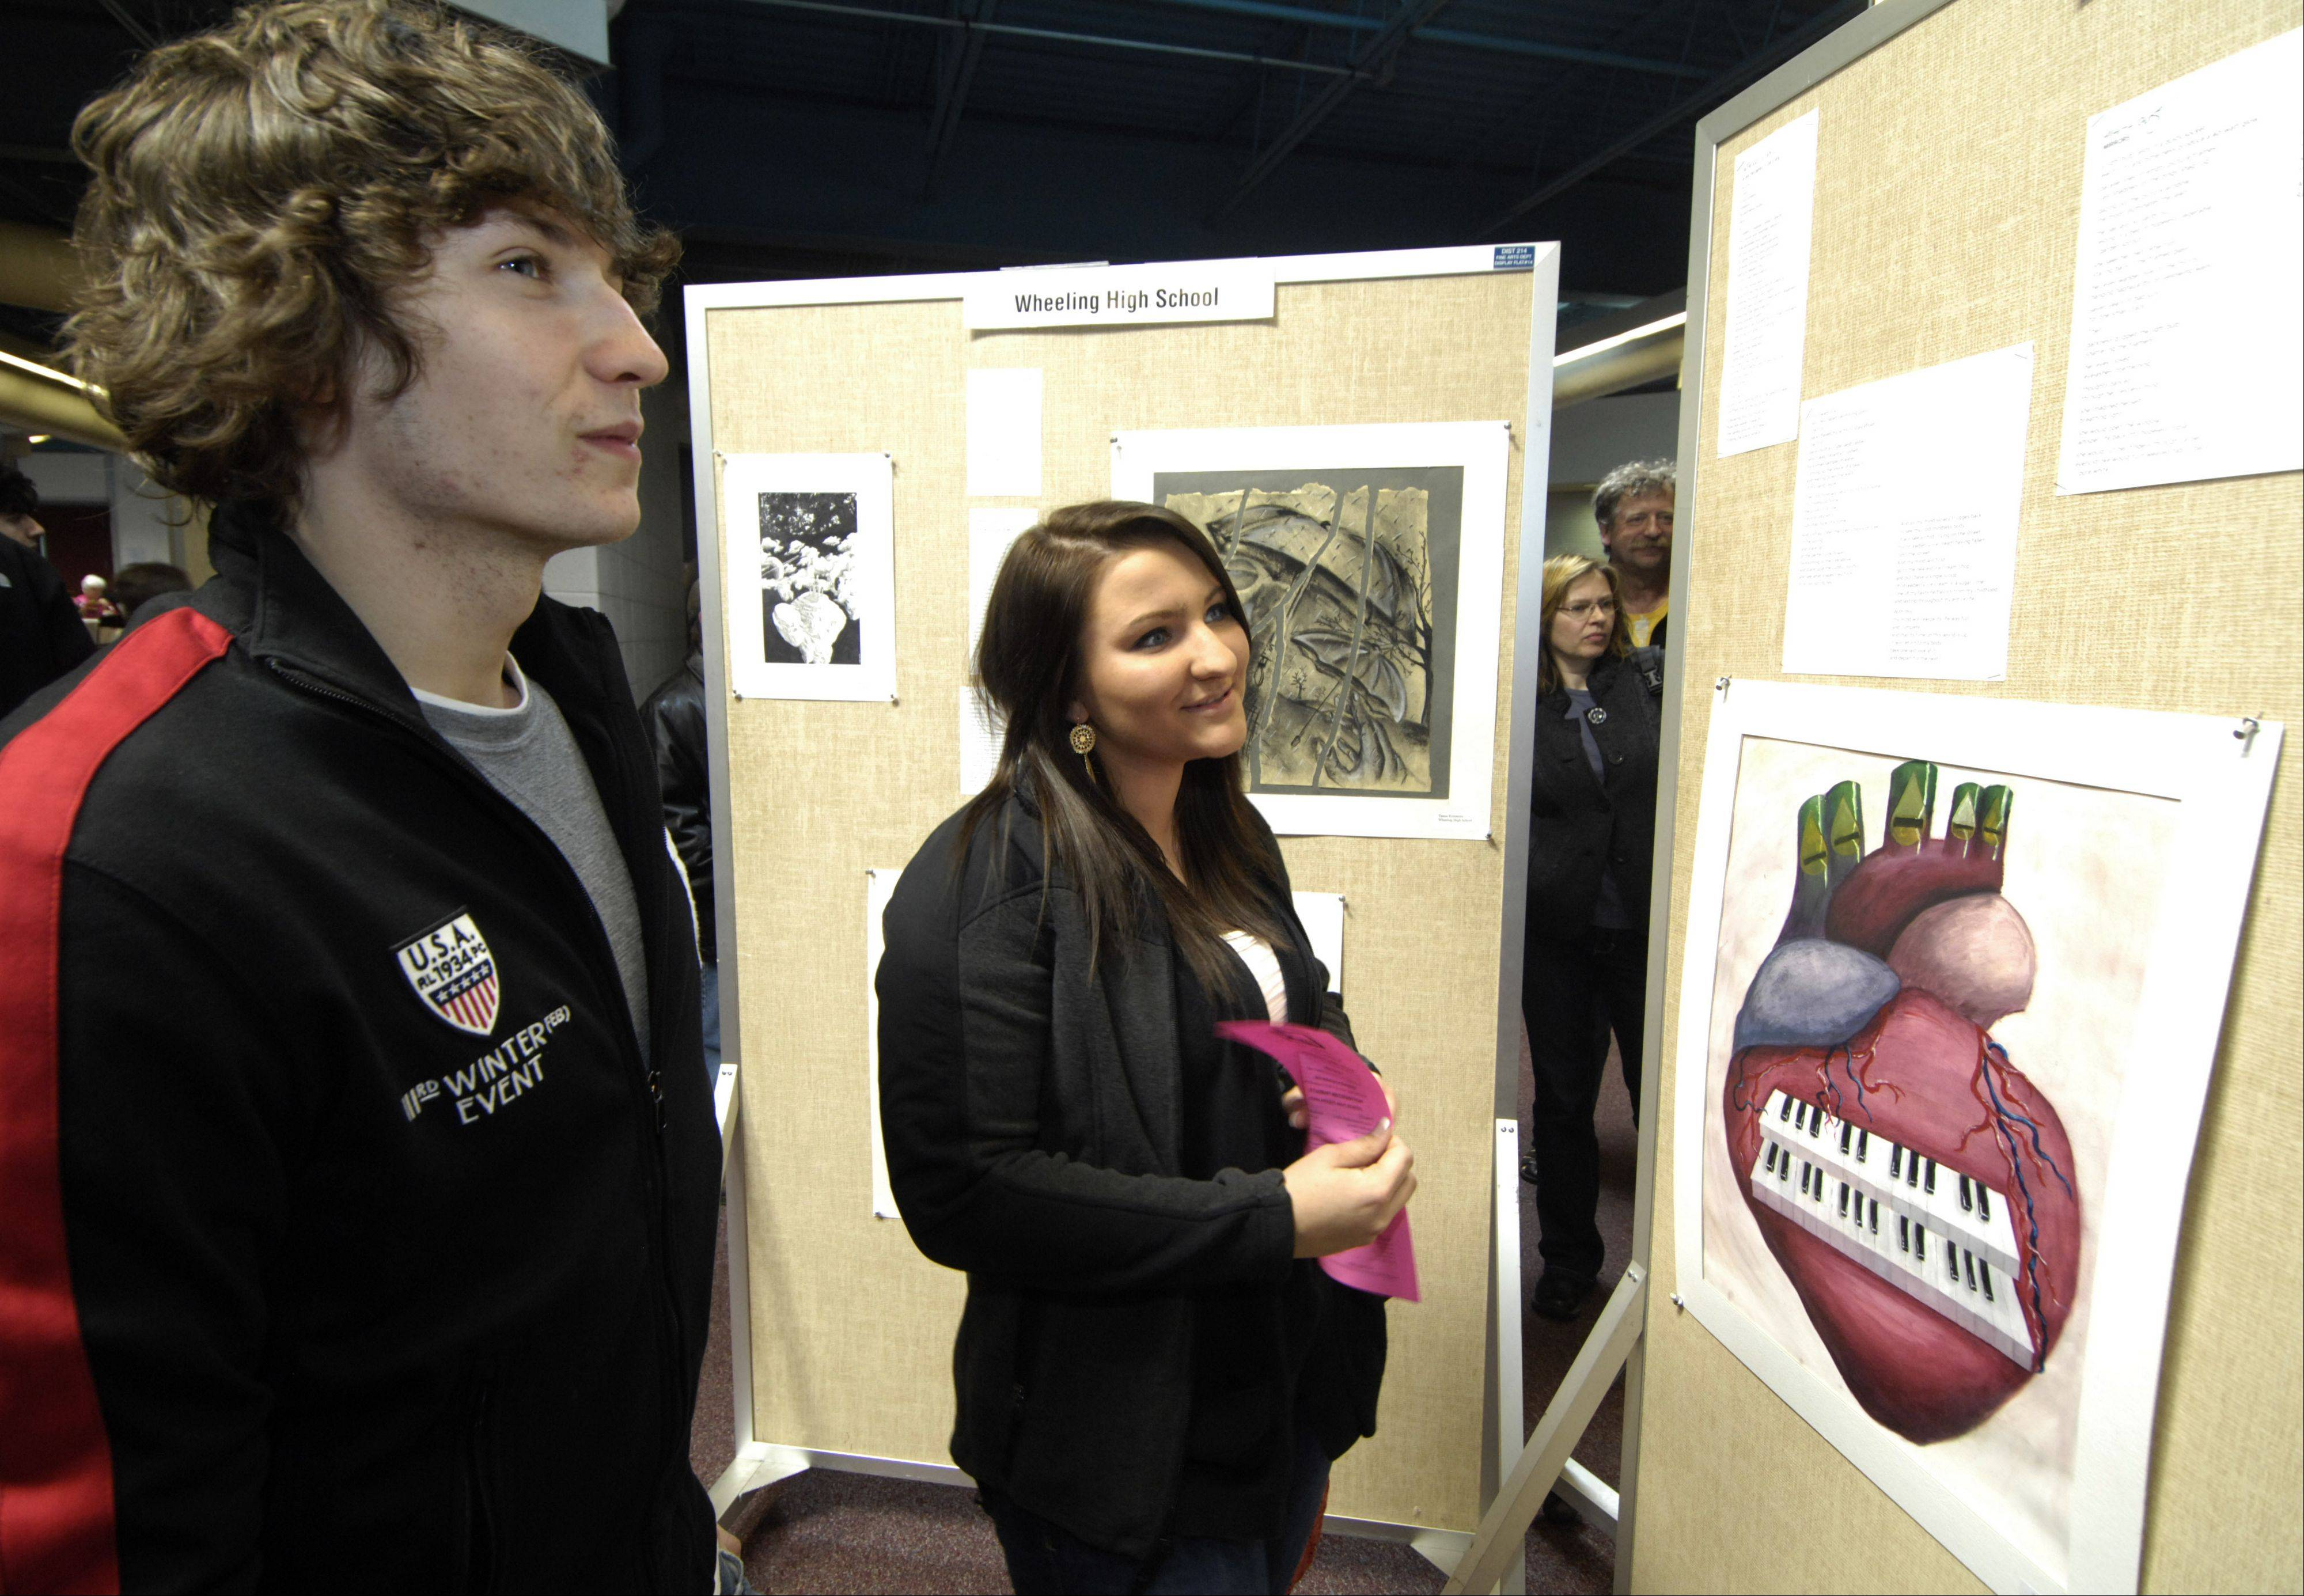 Amanda Faust of Rolling Meadows High School views her winning poem with Jakub Grab-Lucki at the 2012 Arts Unlimited reception at Forest View Educational Center.